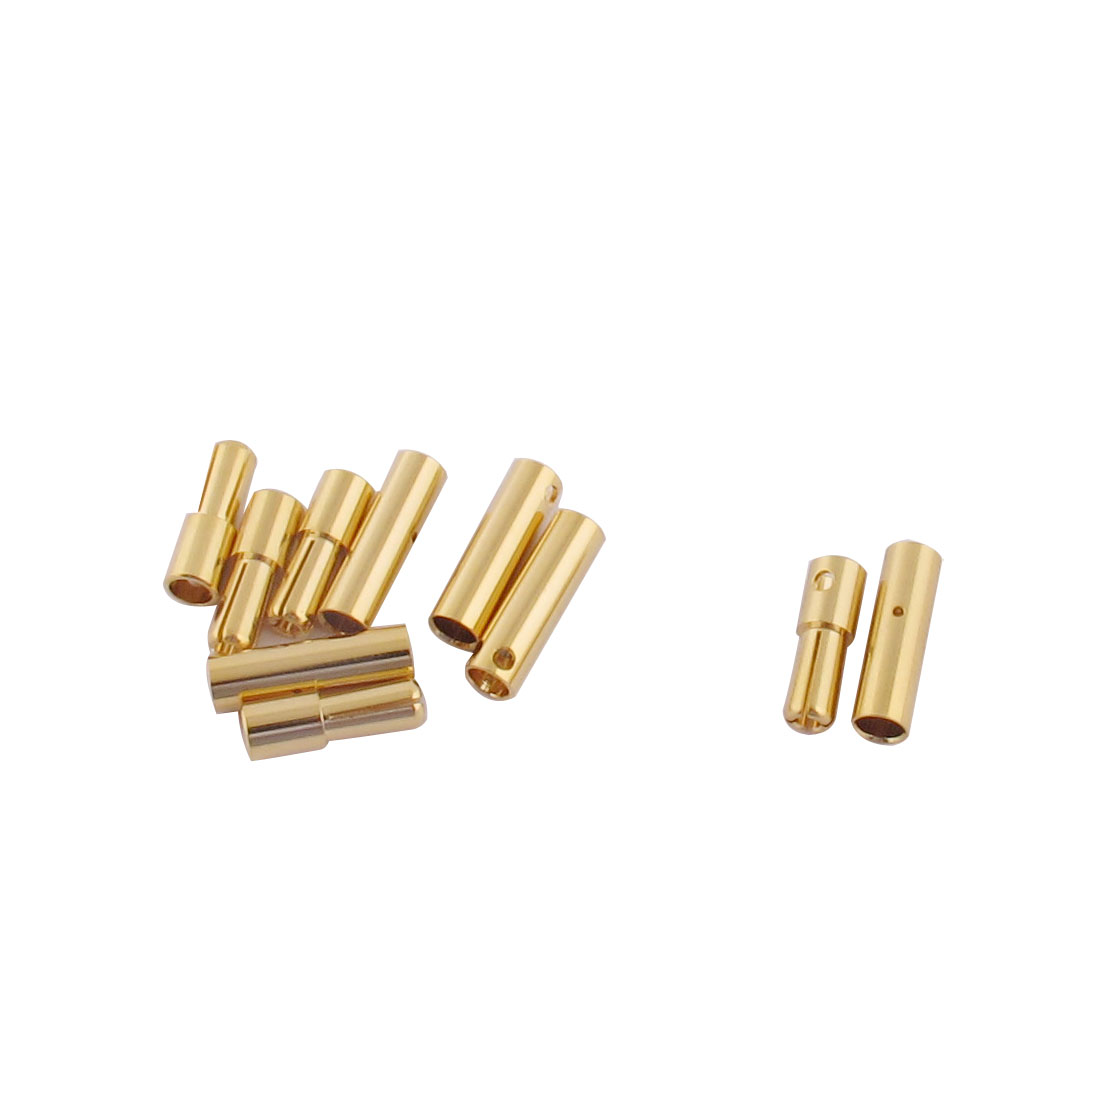 ESC RC LiPo Battery 4mm Male Female Banana Connector Gold Tone 5 Pairs